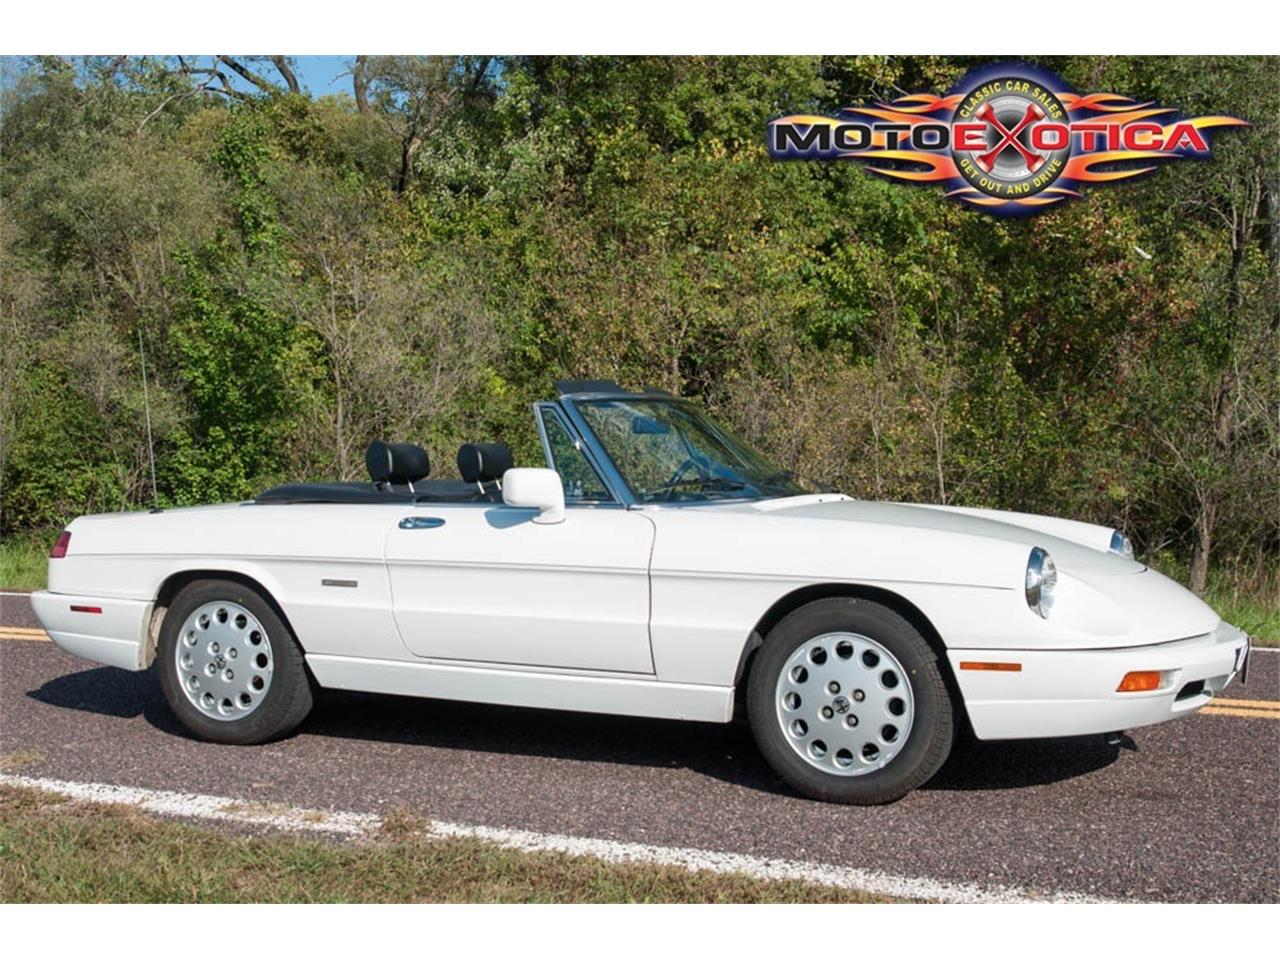 Large Picture of '93 Spider located in St. Louis Missouri Auction Vehicle - JIHY